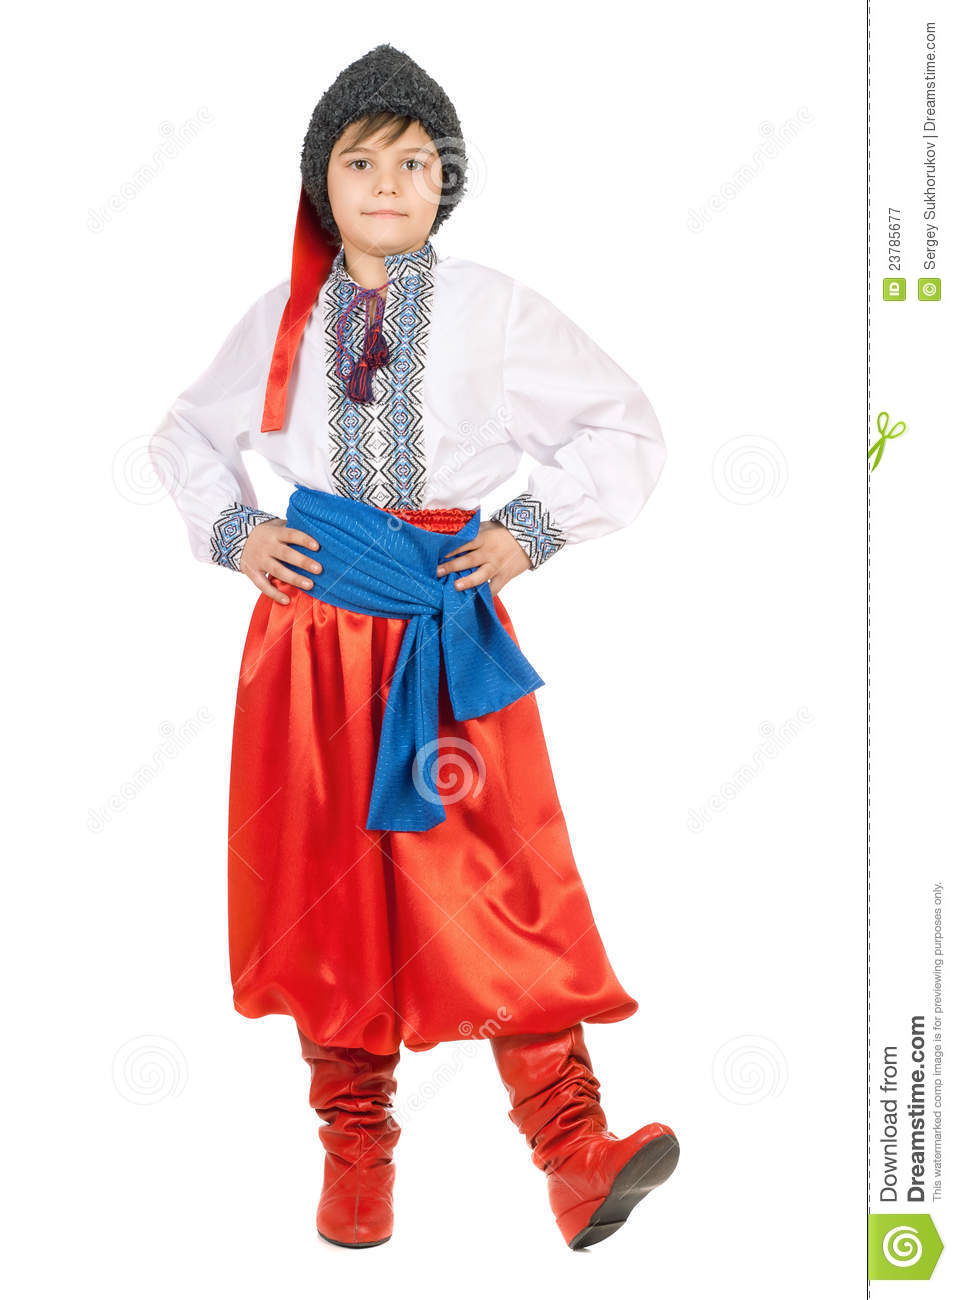 Boy In The Ukrainian National Costume Royalty Free Stock